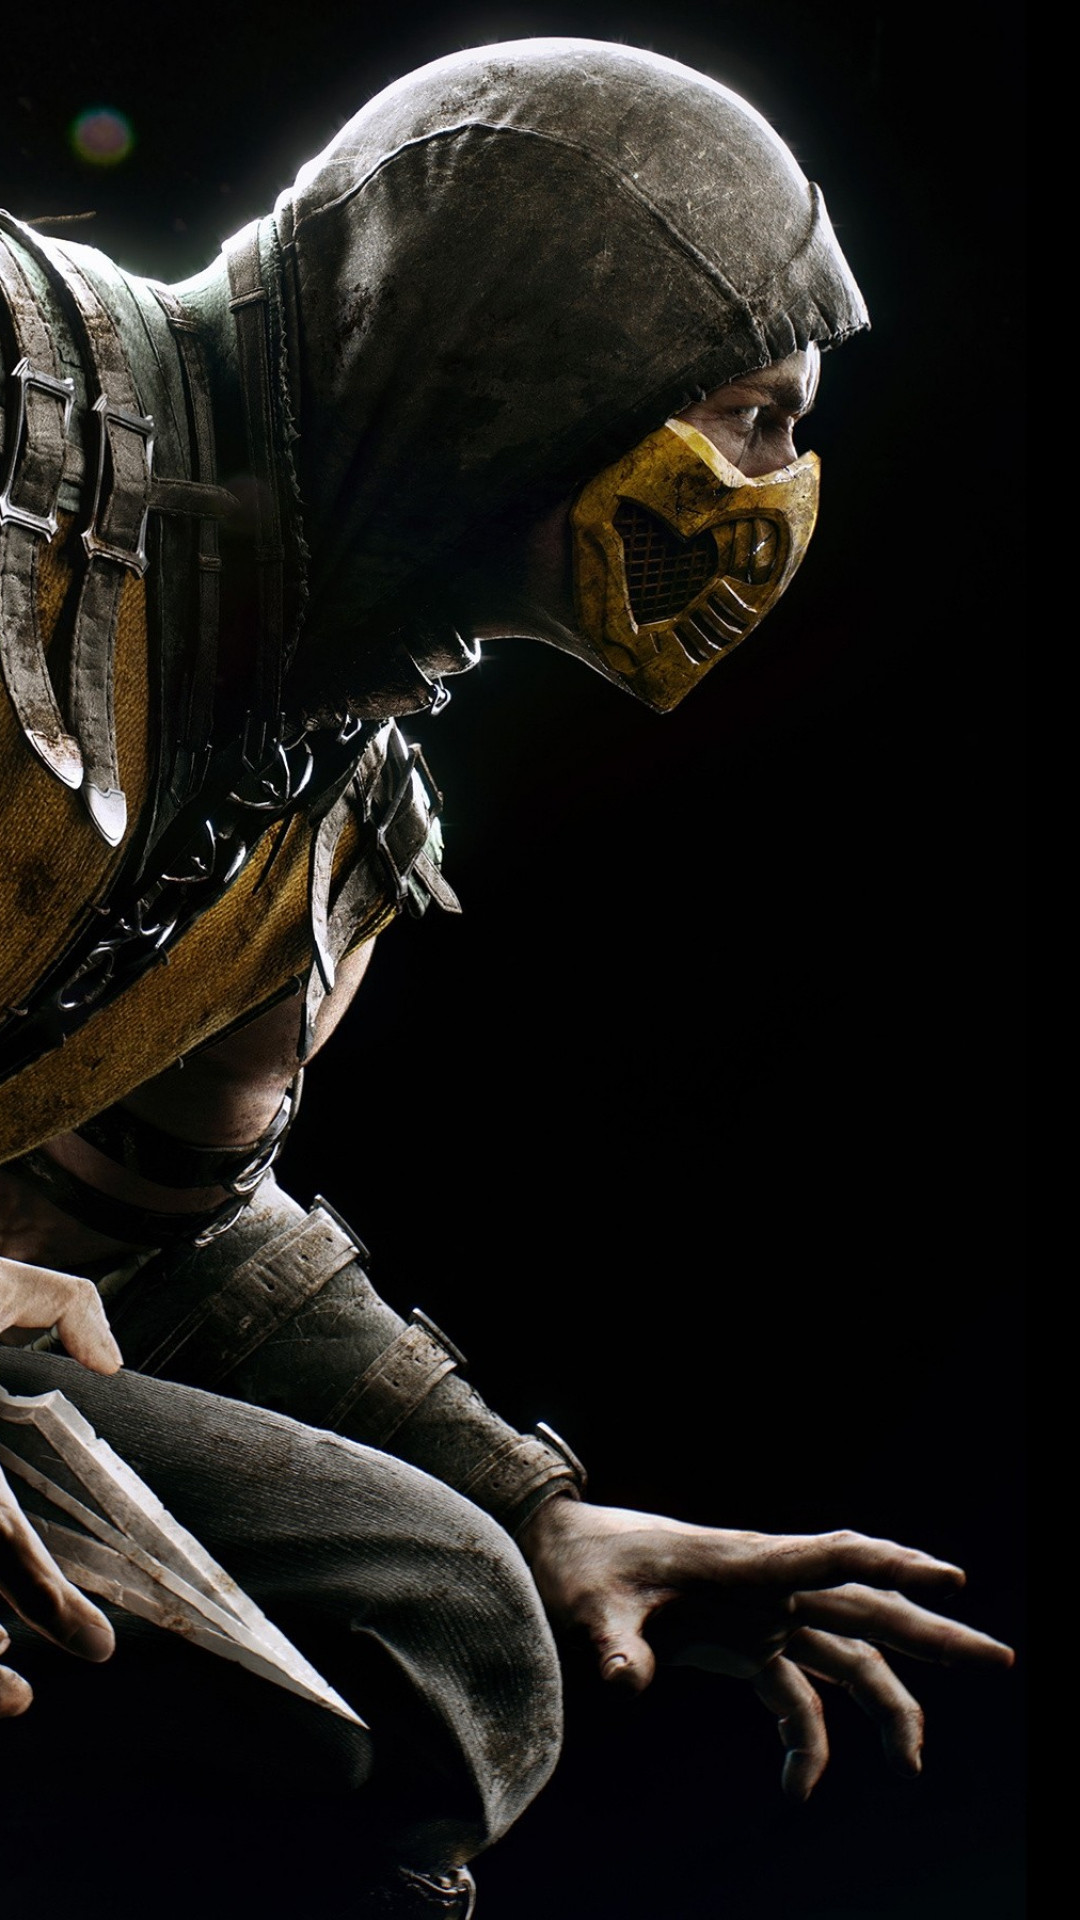 Mortal kombat scorpion wallpapers 66 images - Mortal kombat scorpion wallpaper ...